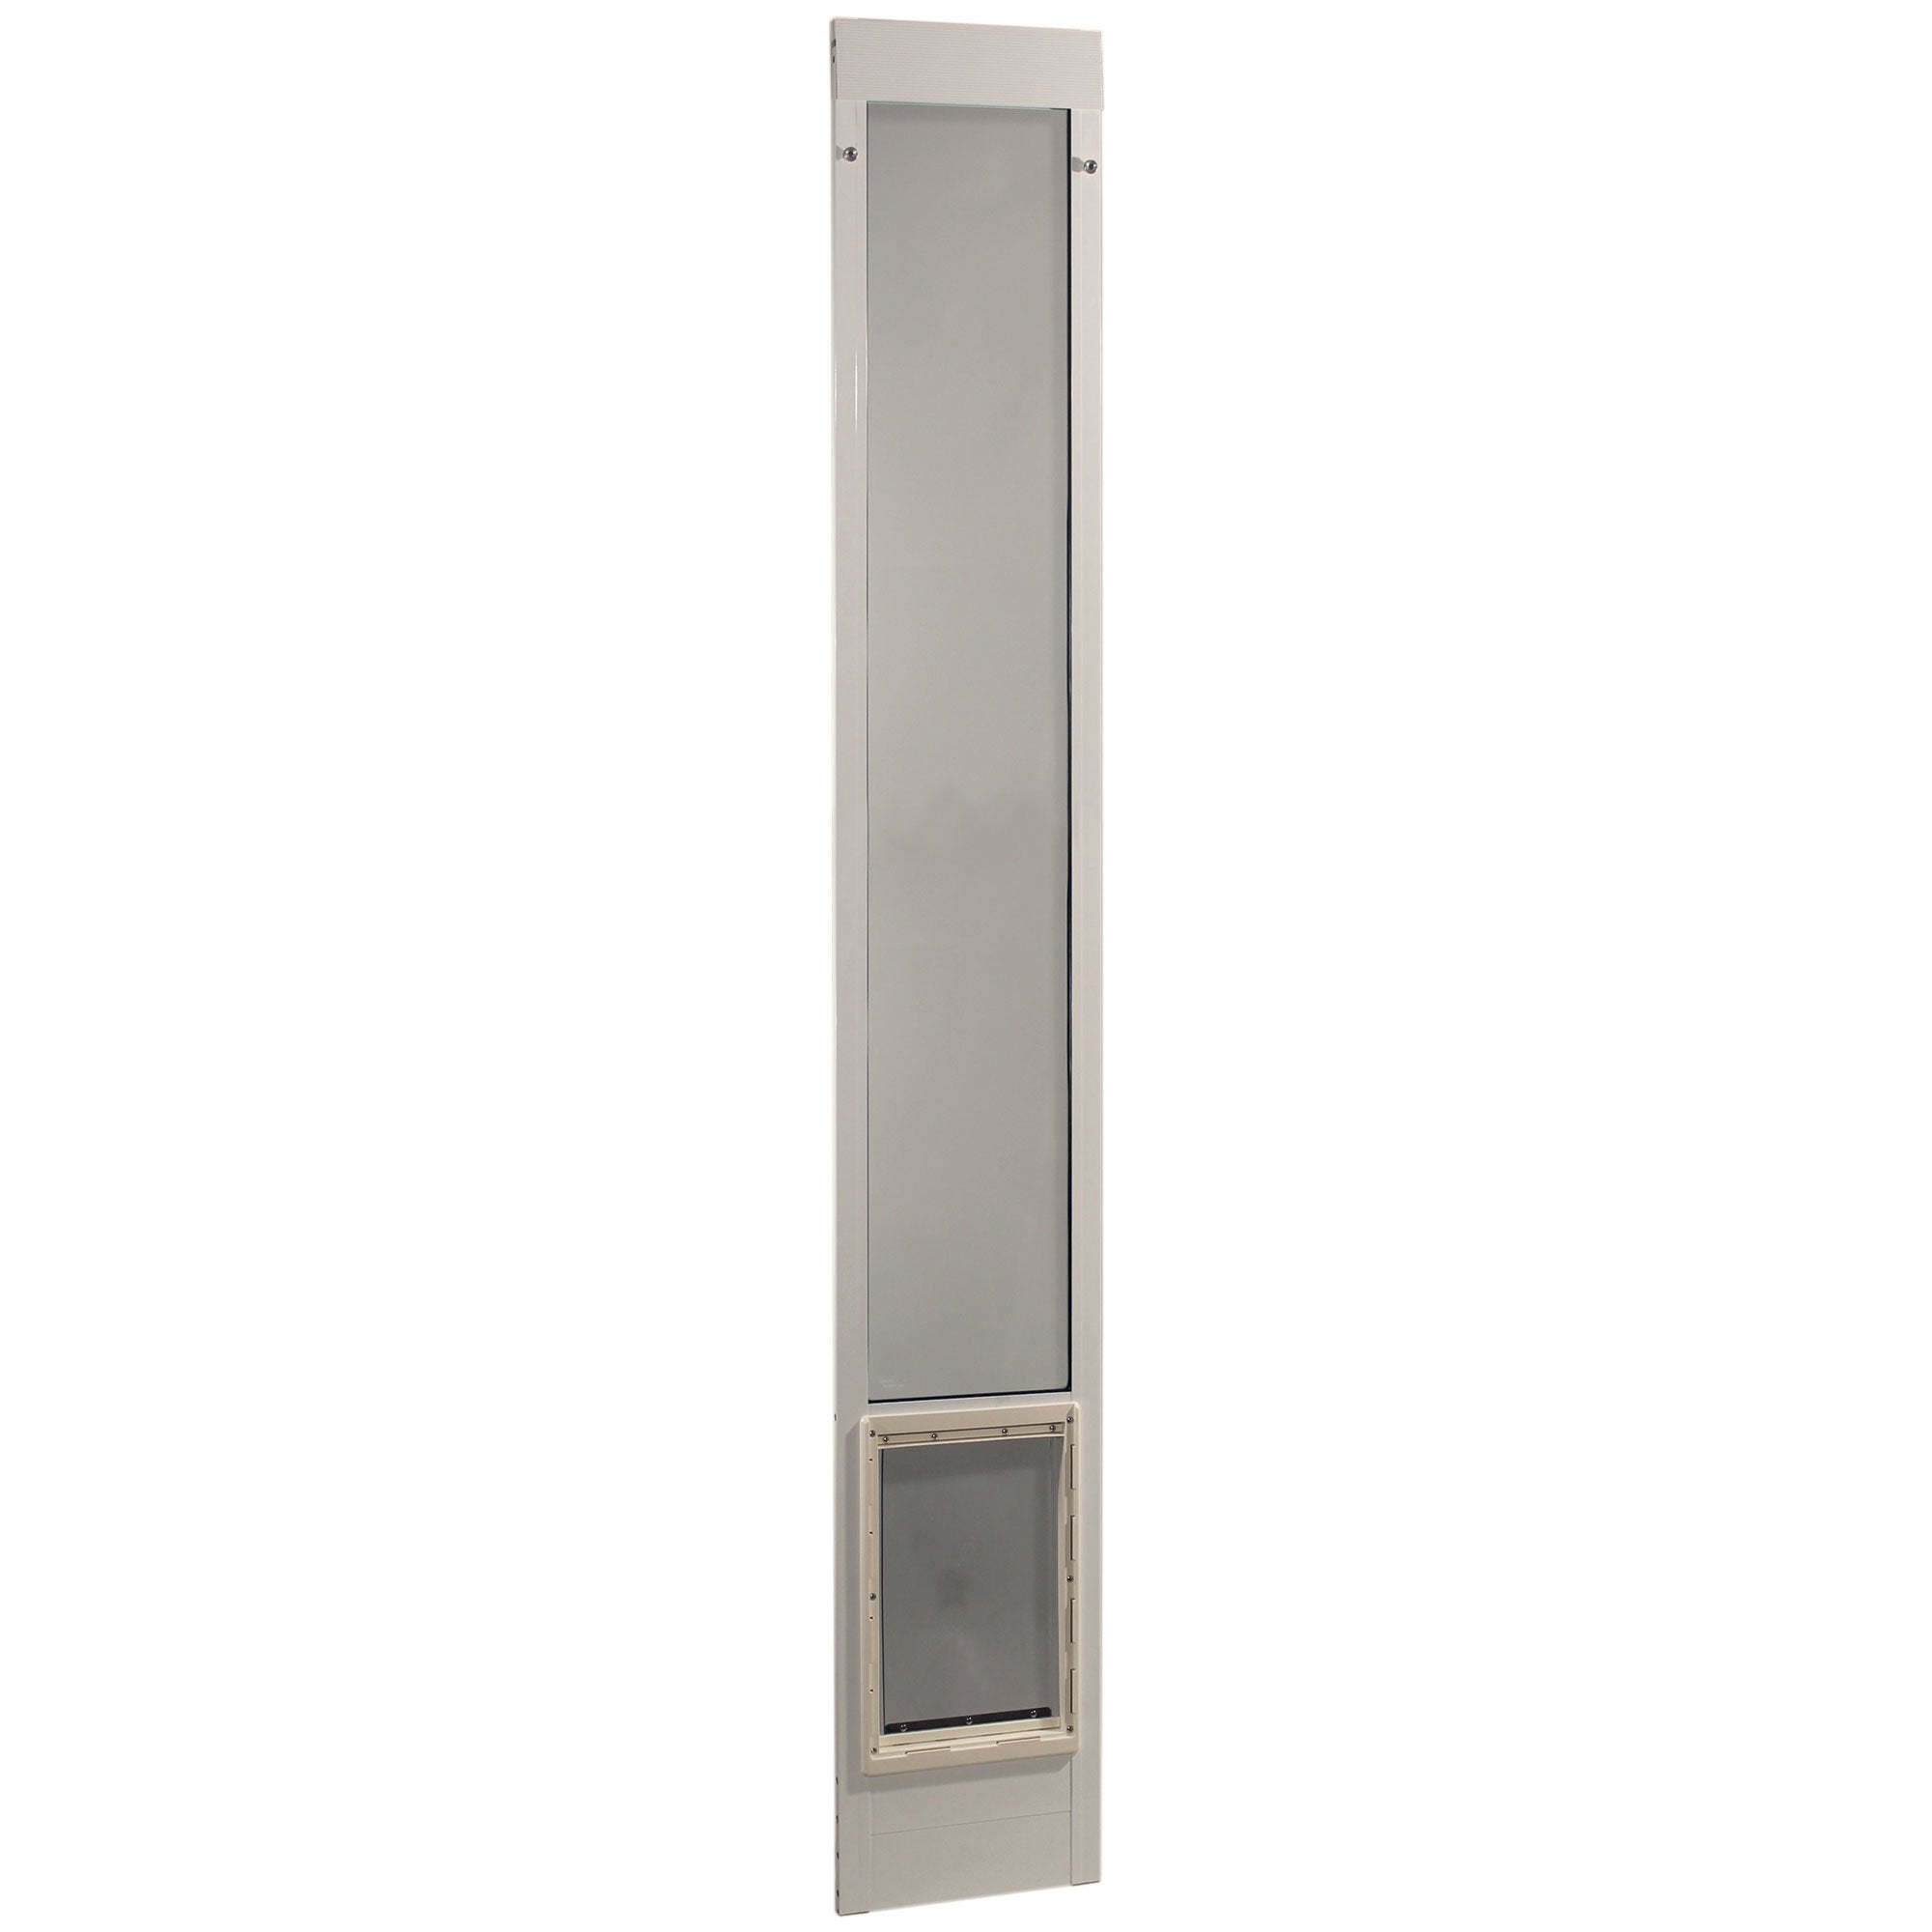 Ideal Pet Products Fast Fit Pet Patio Door Extra Large White 2″ x 15″ x 93.62″